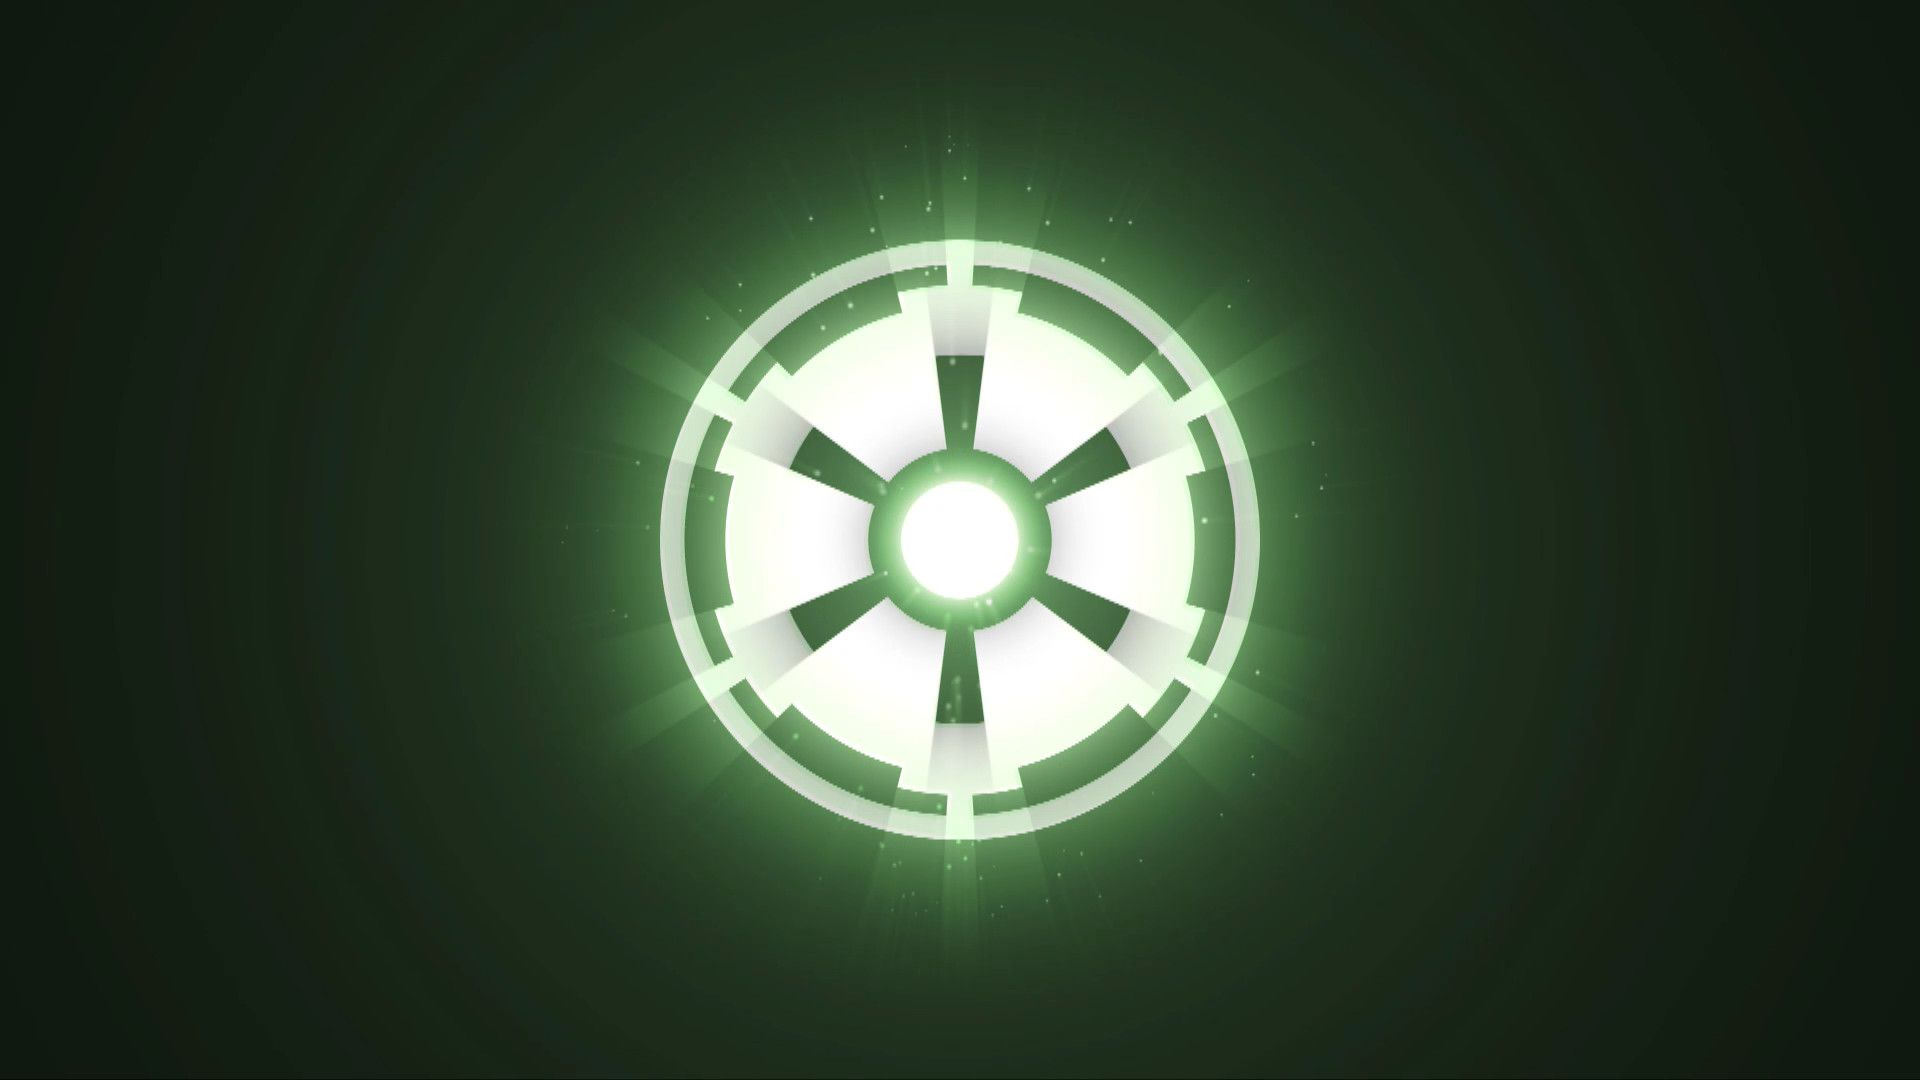 Star Wars Imperial Logo Wallpapers Top Free Star Wars Imperial Logo Backgrounds Wallpaperaccess